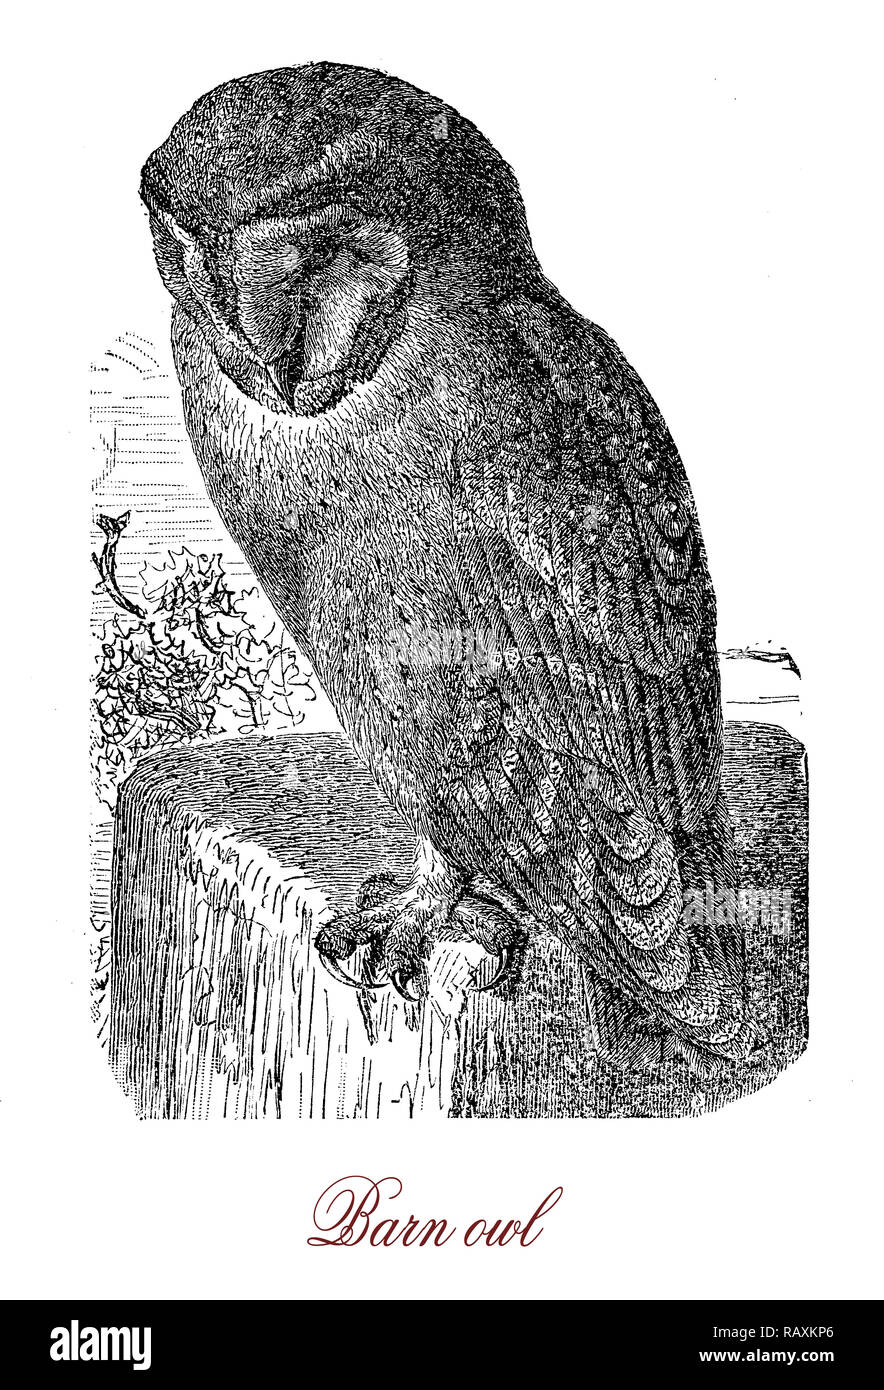 Vintage engraving of barn owl, nocturnal bird with heart shaped face and very acute hearing, specialized in hunting small mammals on the ground located by sound - Stock Image